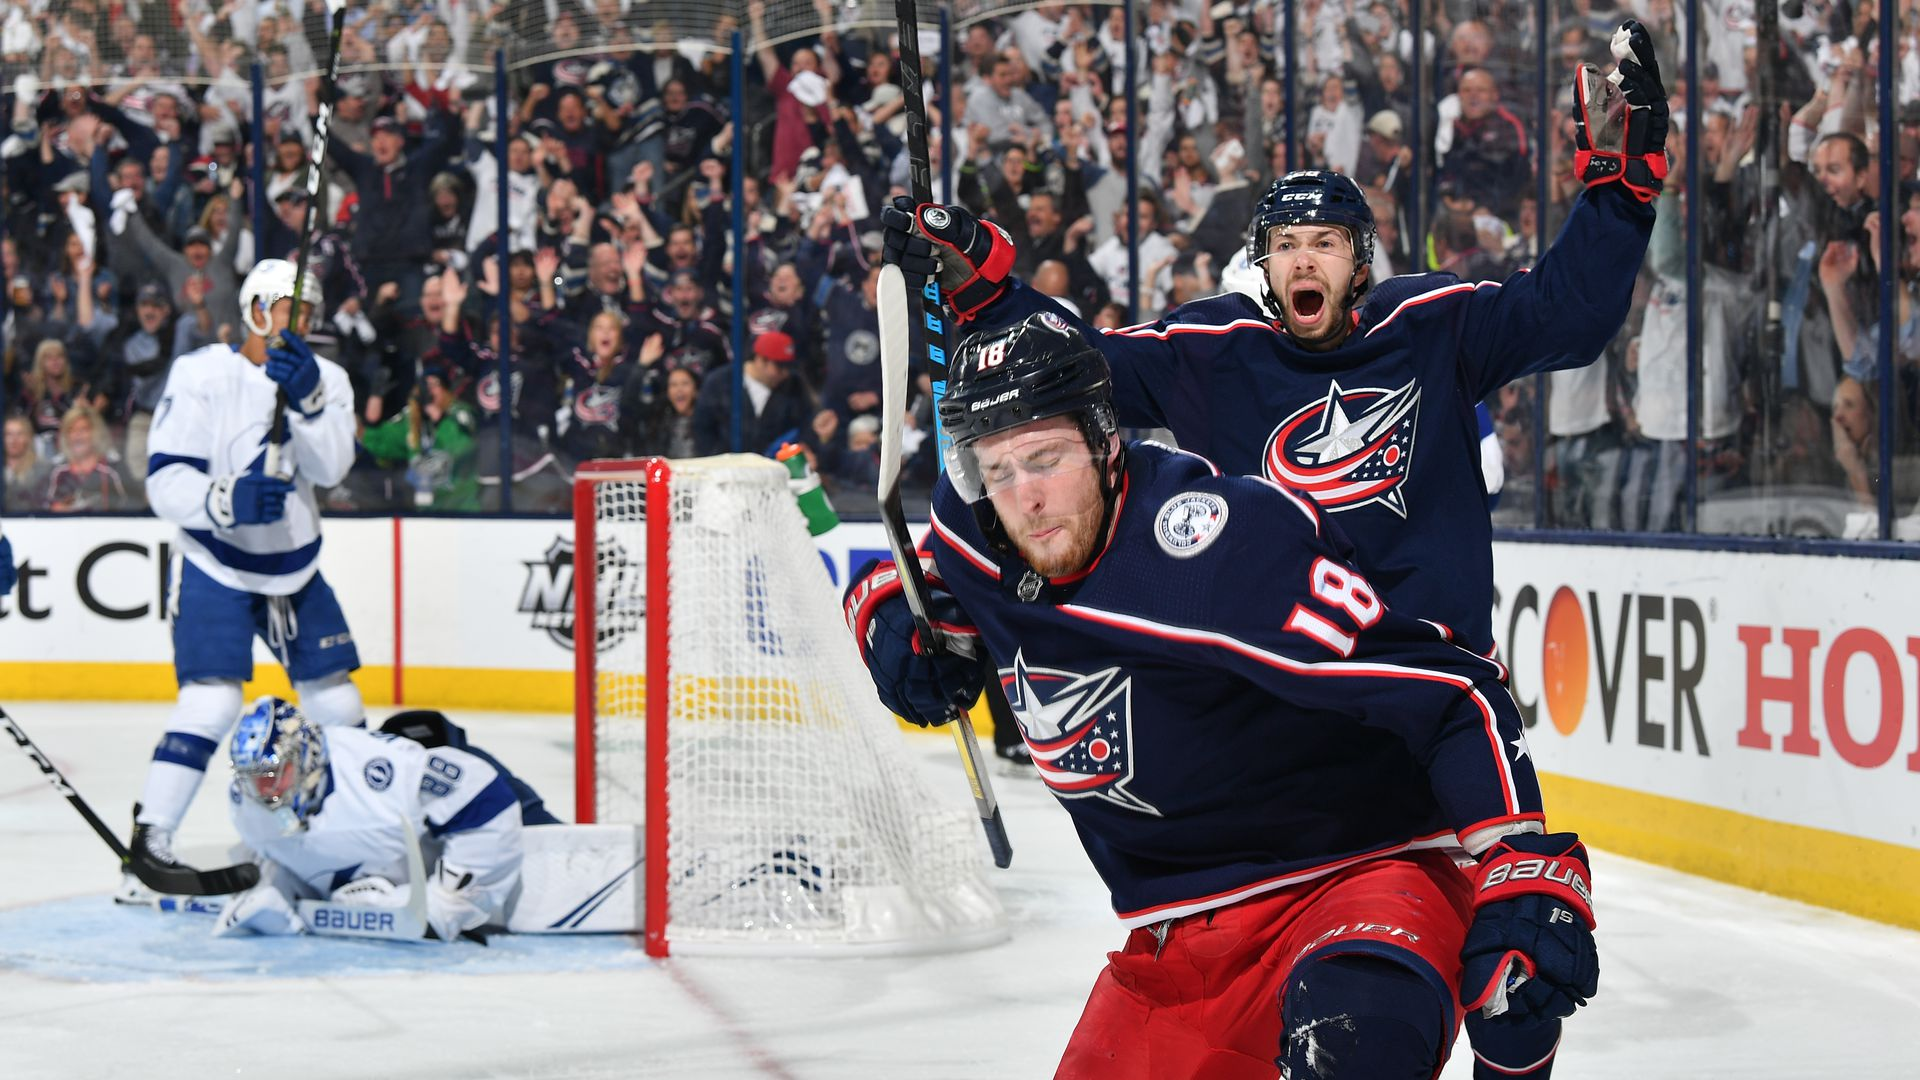 Blue Jackets players celebrating a goal